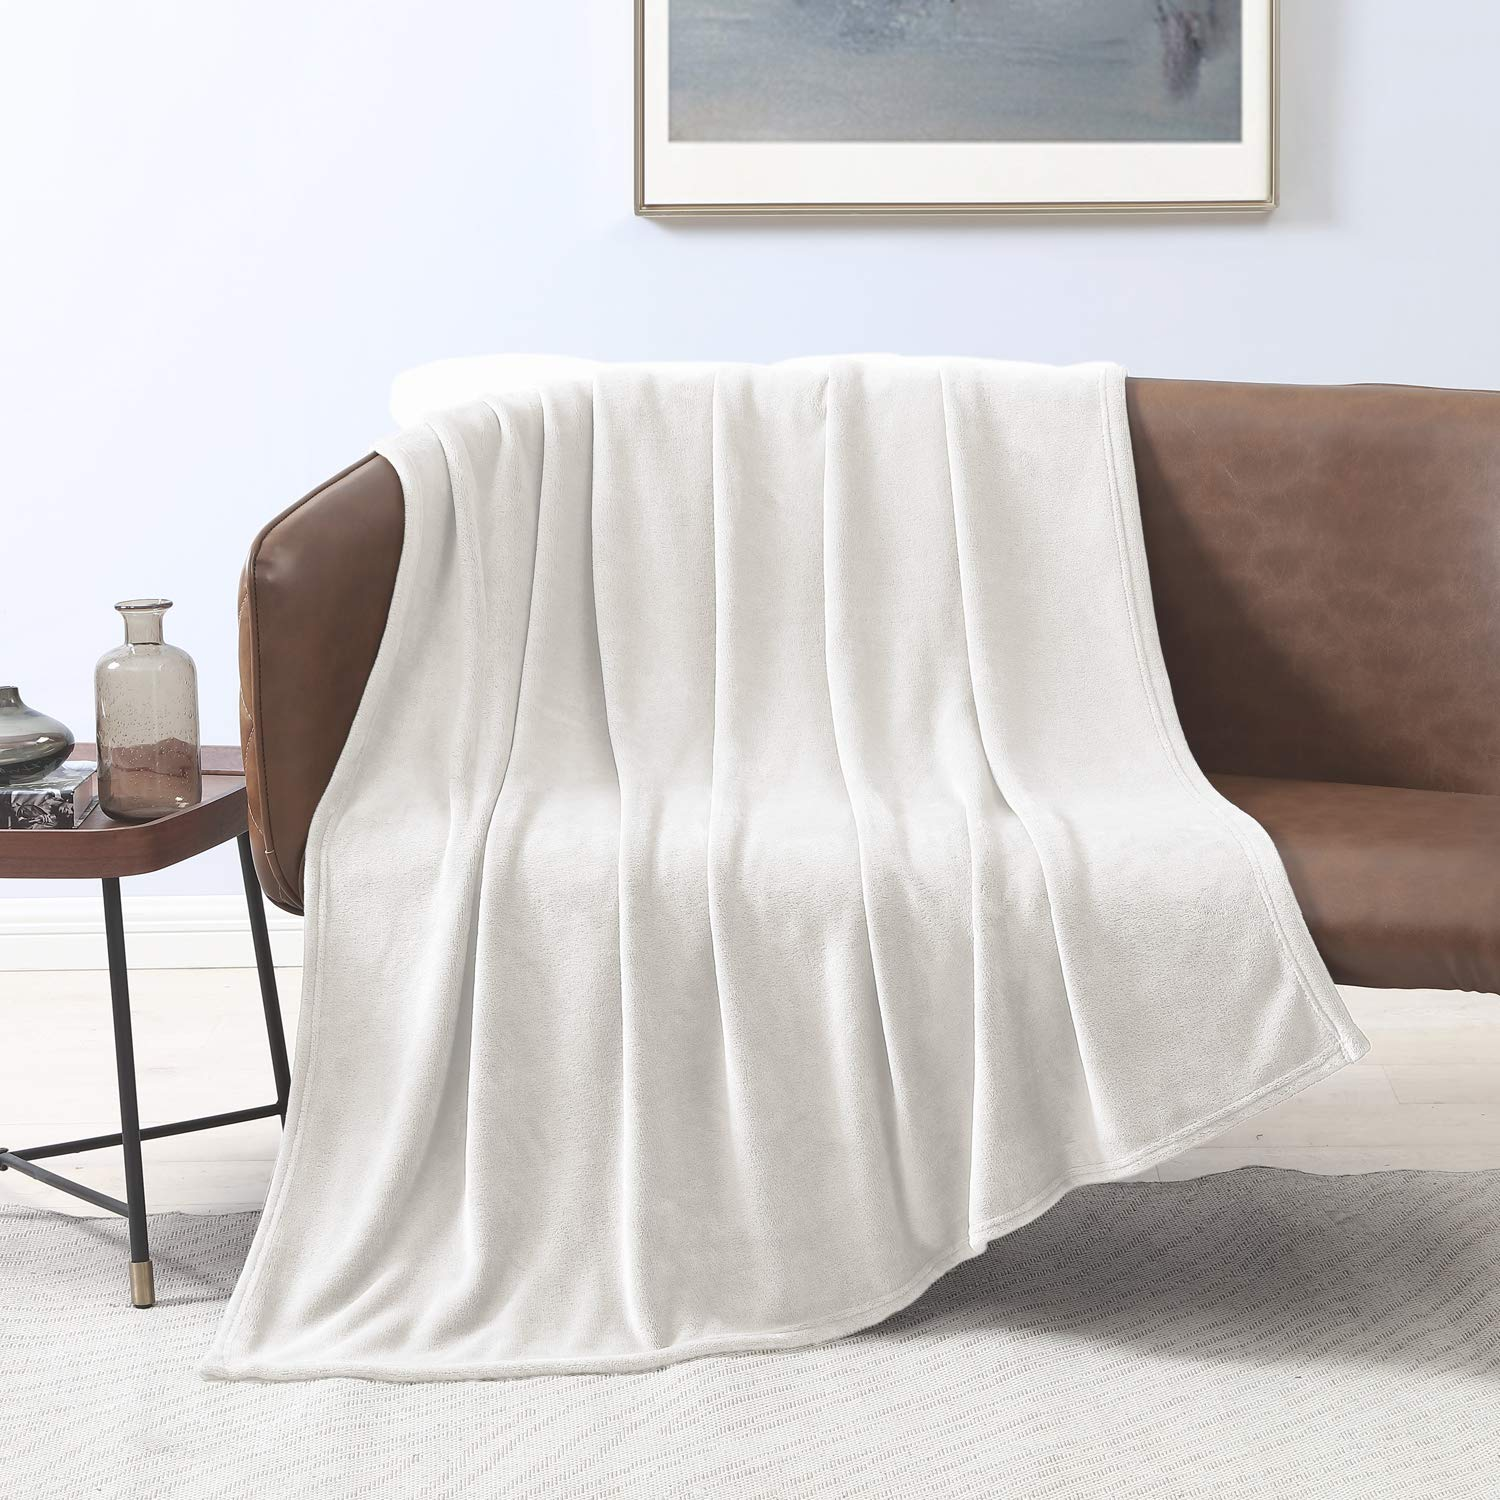 Love's cabin Flannel Fleece Blanket Twin Size White Throw Blanket for Couch, Extra Soft Double Side Fuzzy & Plush Fall Blanket, Fluffy Cozy Blanket for Adults Kids or Pet (Lightweight,Non Shedding)